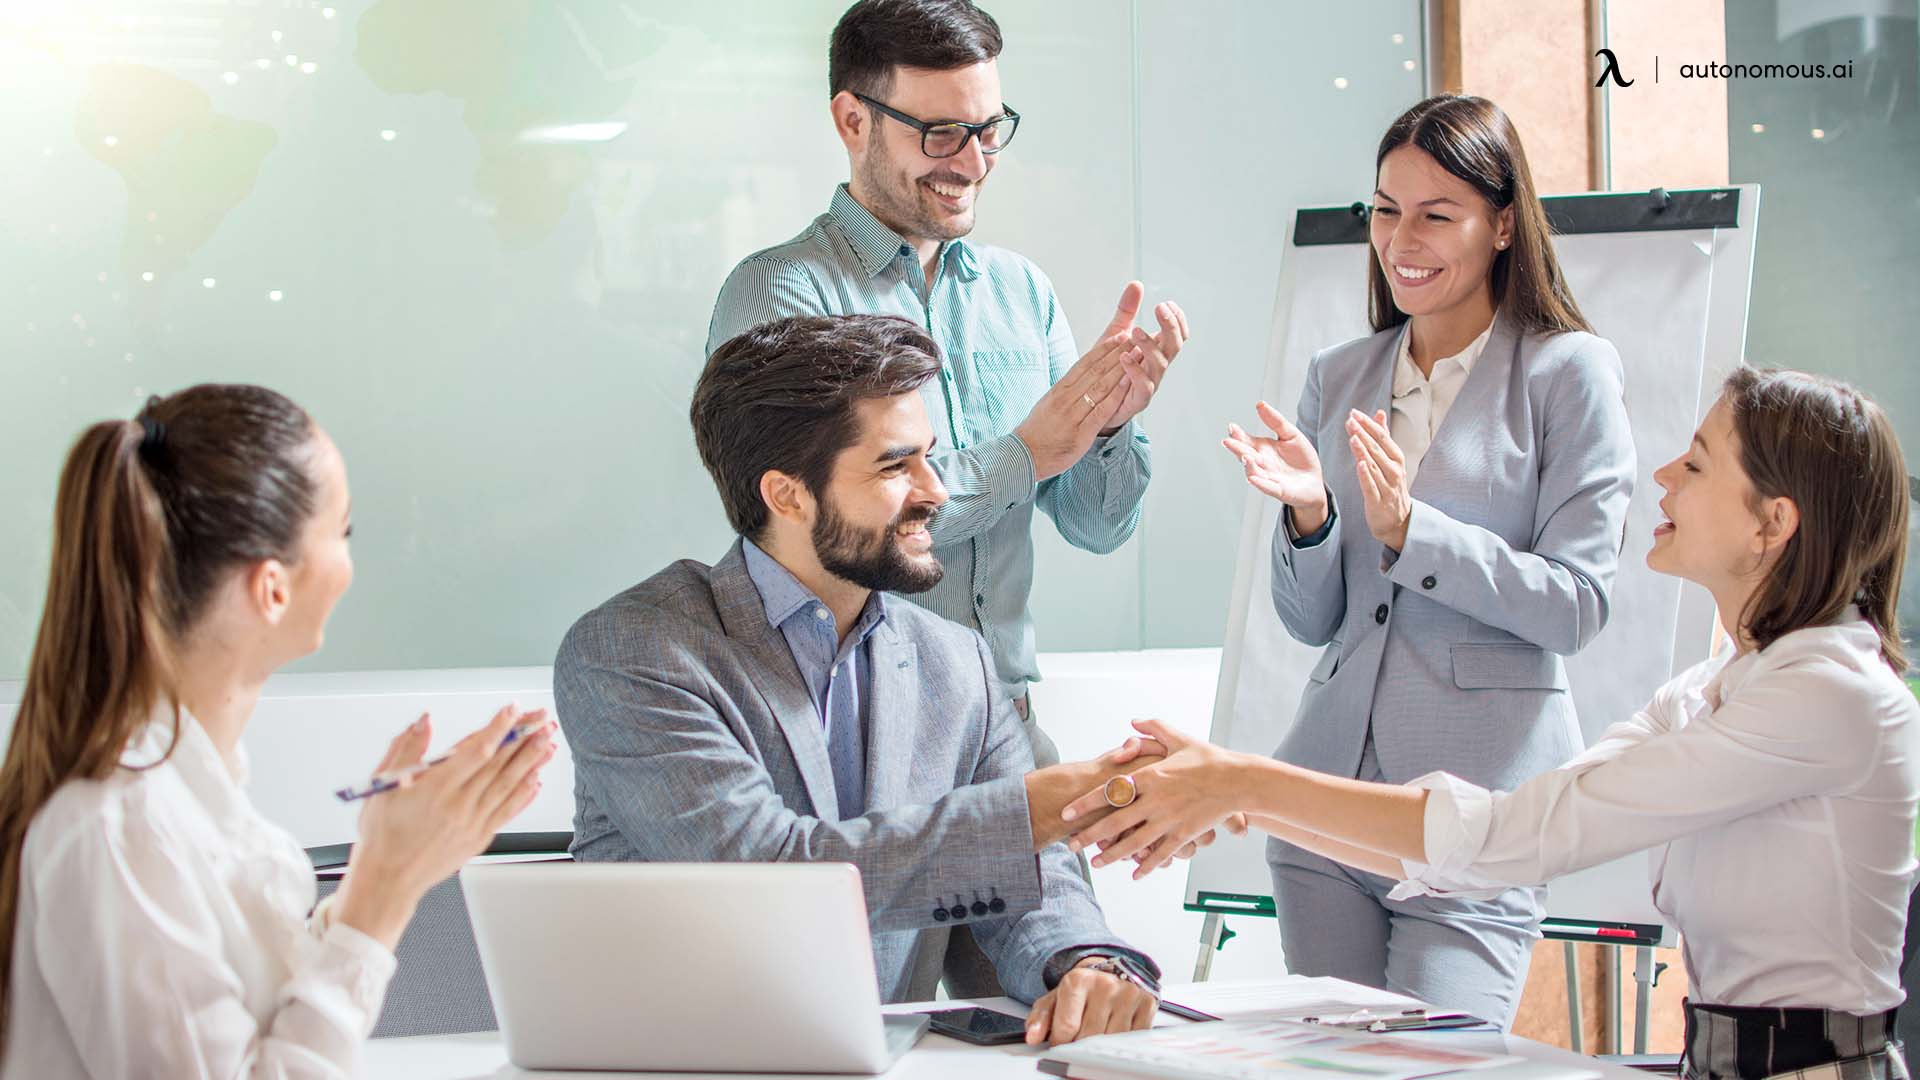 Connect with your employees